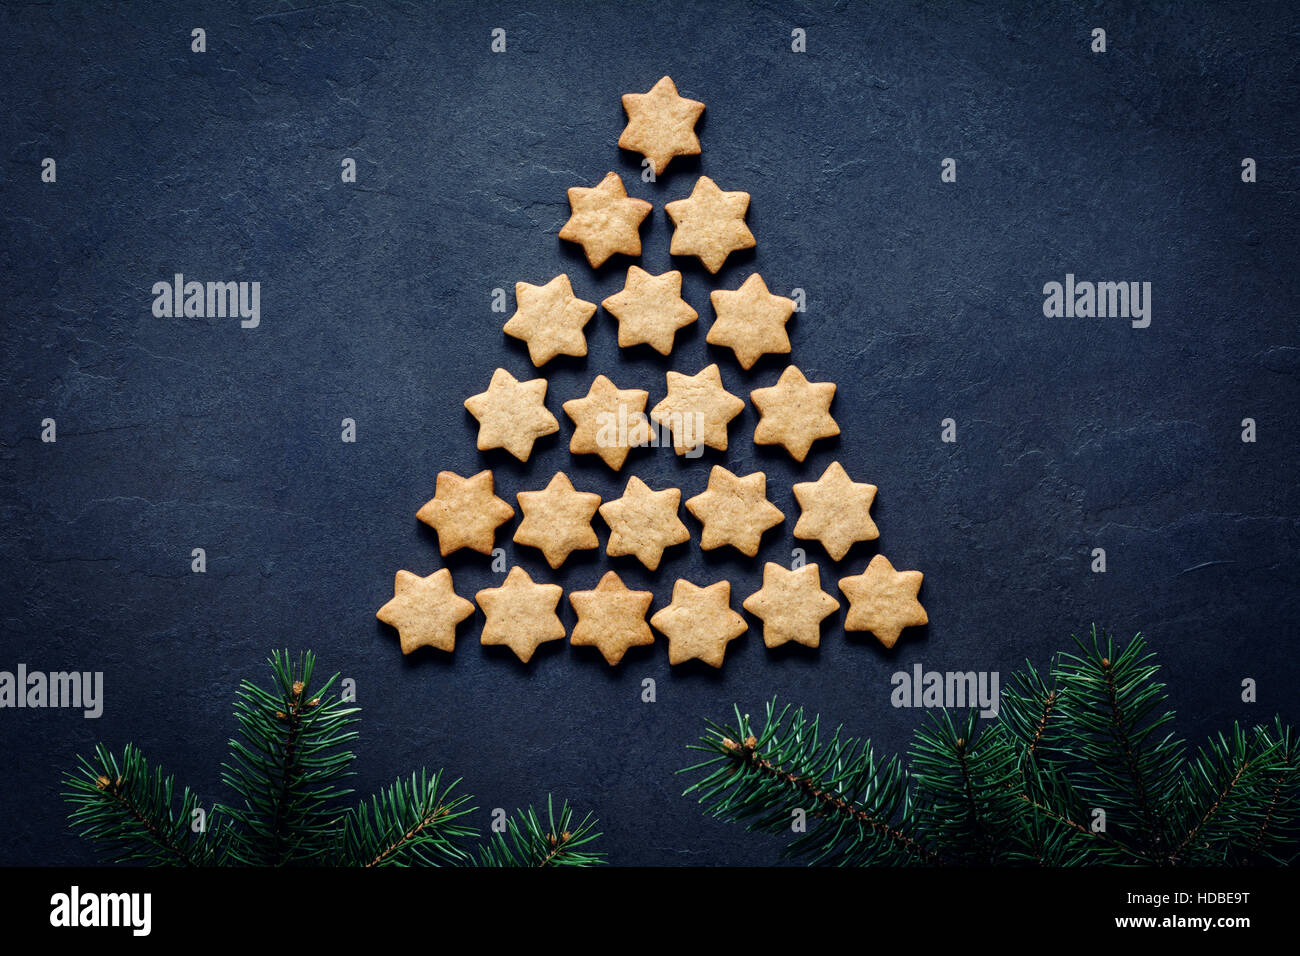 Christmas or New Year tree made of stars shaped cookies. Abstract image with copy space. Holiday, Christmas, New - Stock Image